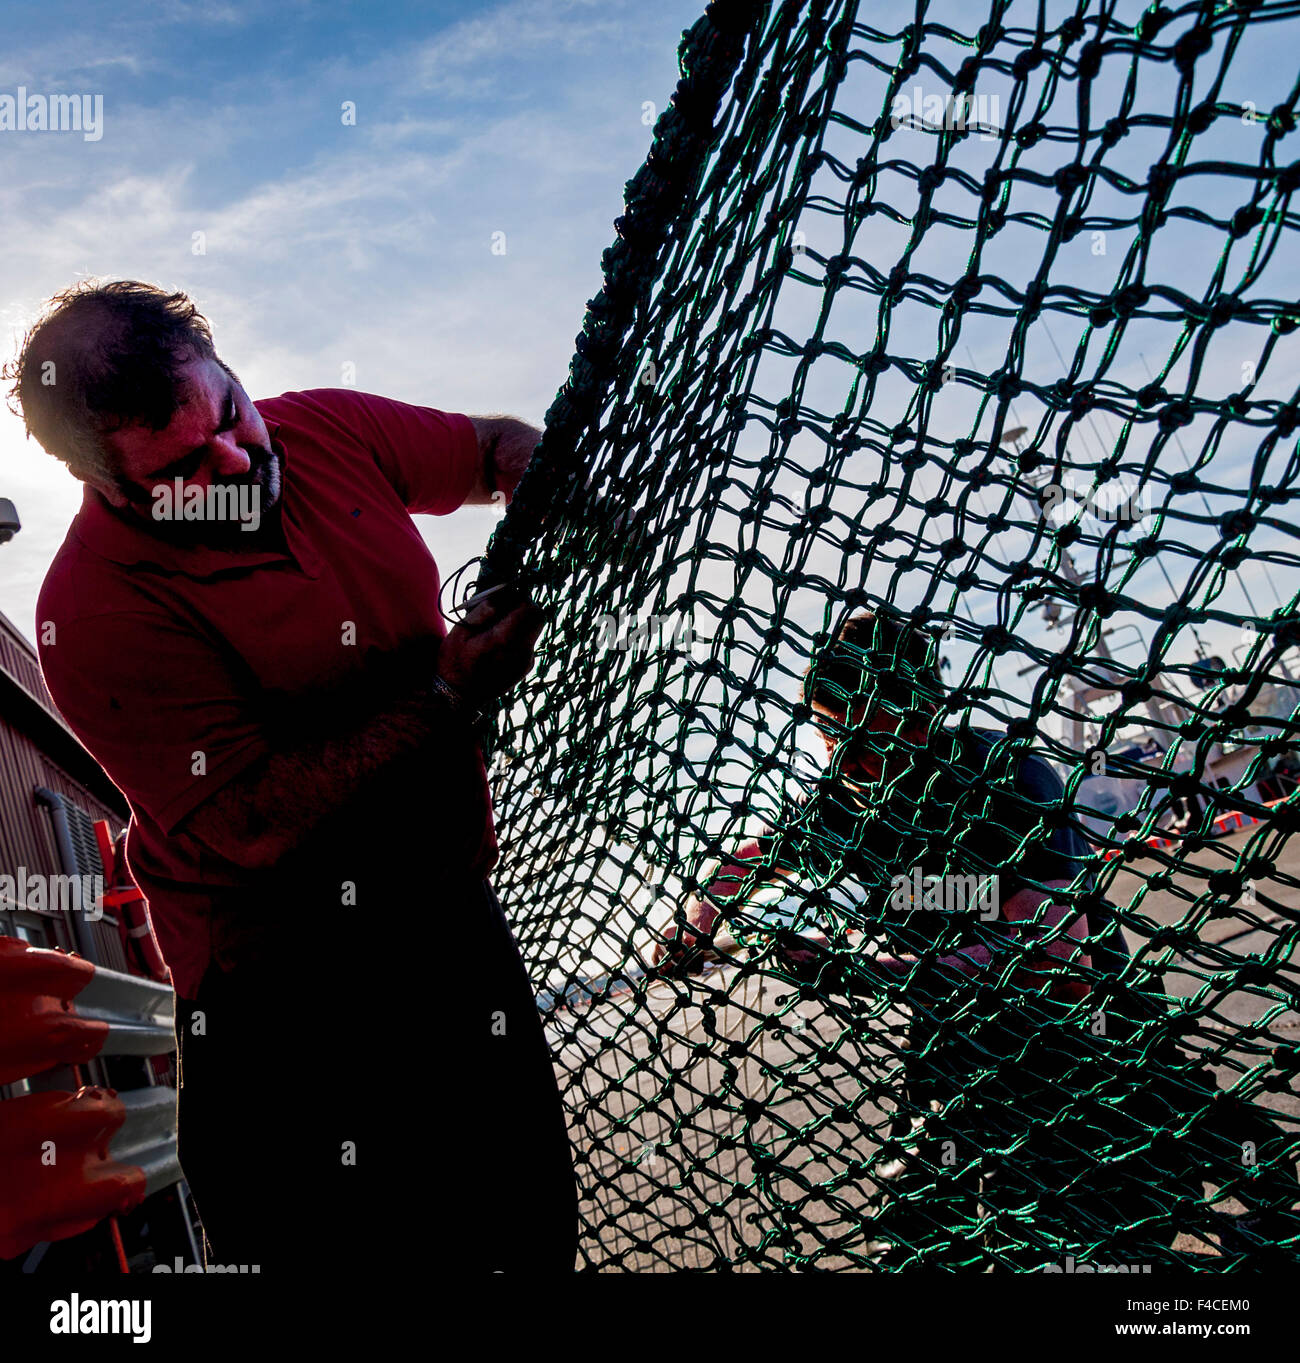 Killybegs, County Donegal, Ireland. October 16th 2015. Fishermen repairing nets on the dockside of Ireland's - Stock Image